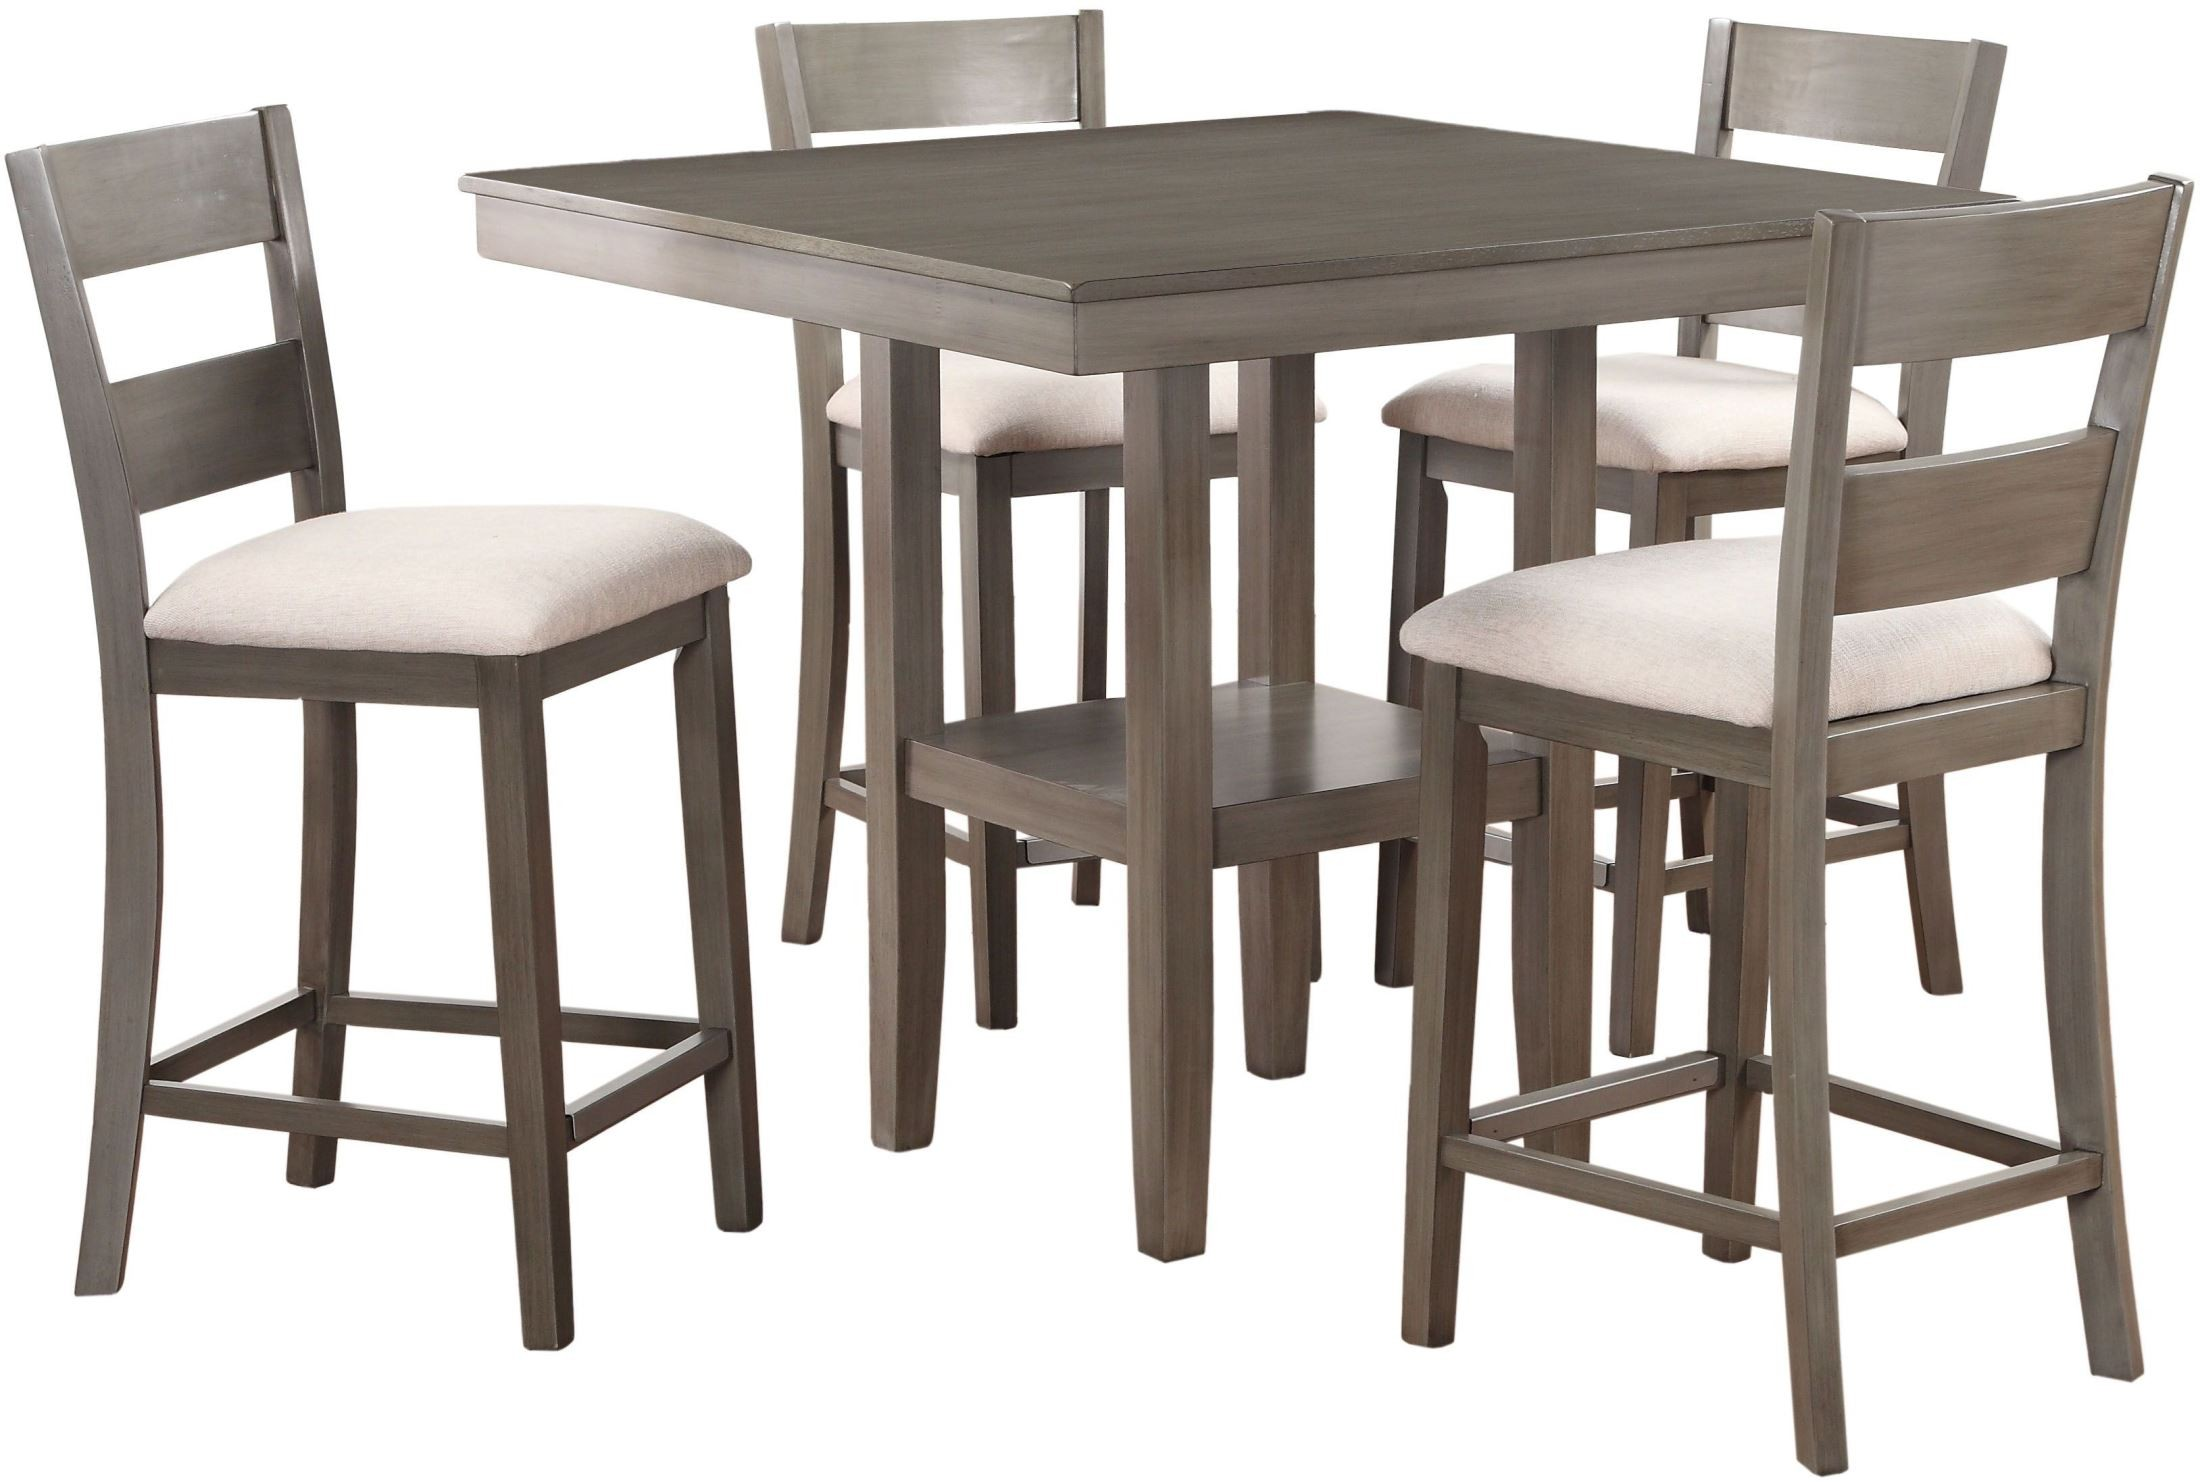 Loft weathered grey 5 piece counter height dining room set for 5 piece dining room sets